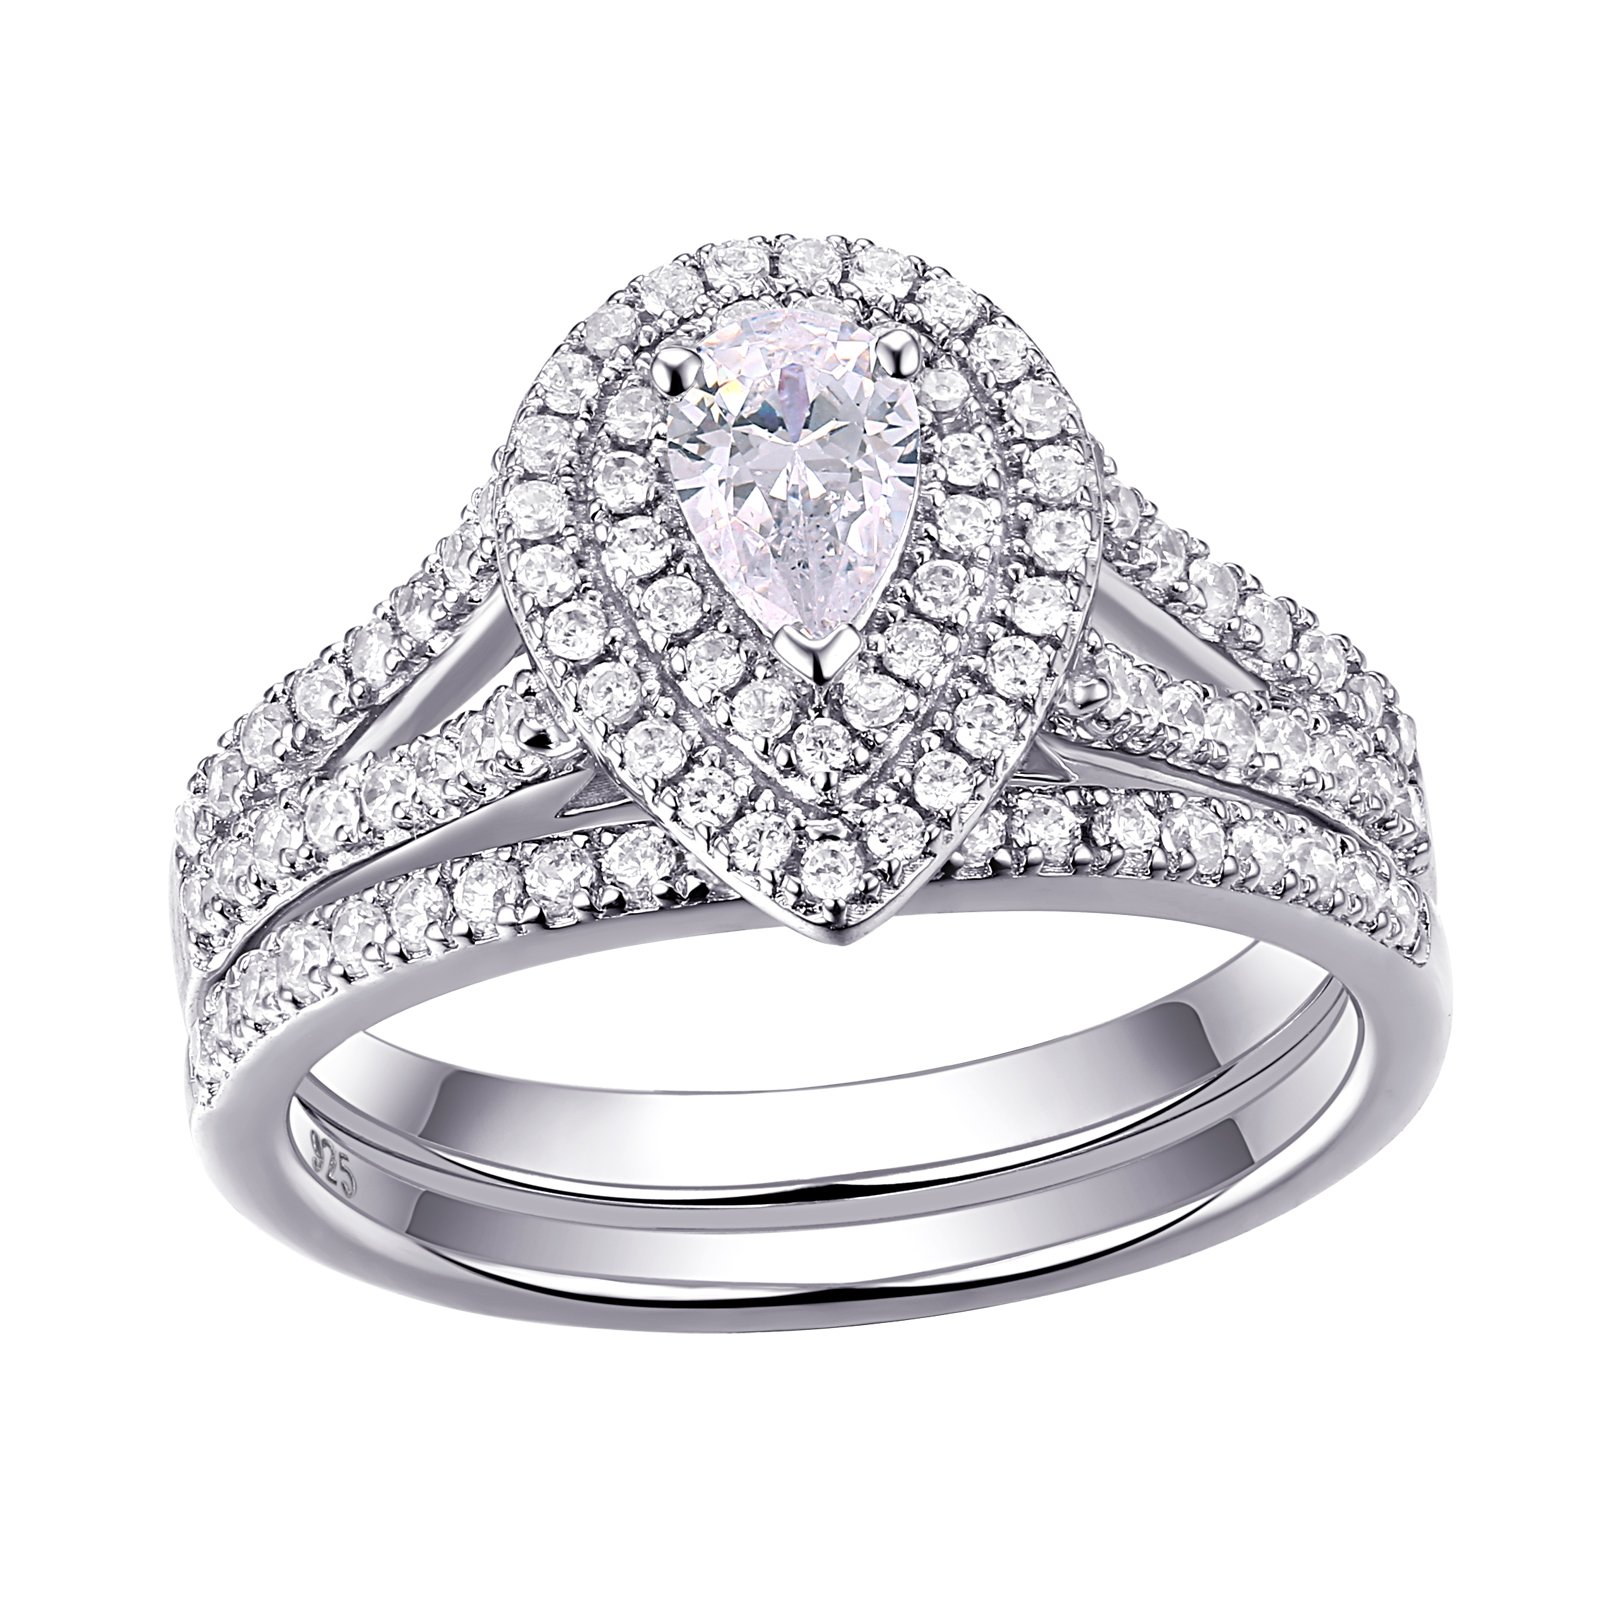 Newshe Wedding Engagement Ring For Women Bridal Set 925 Sterling Silver 1.3ct Pear White AAA Cz Size 9